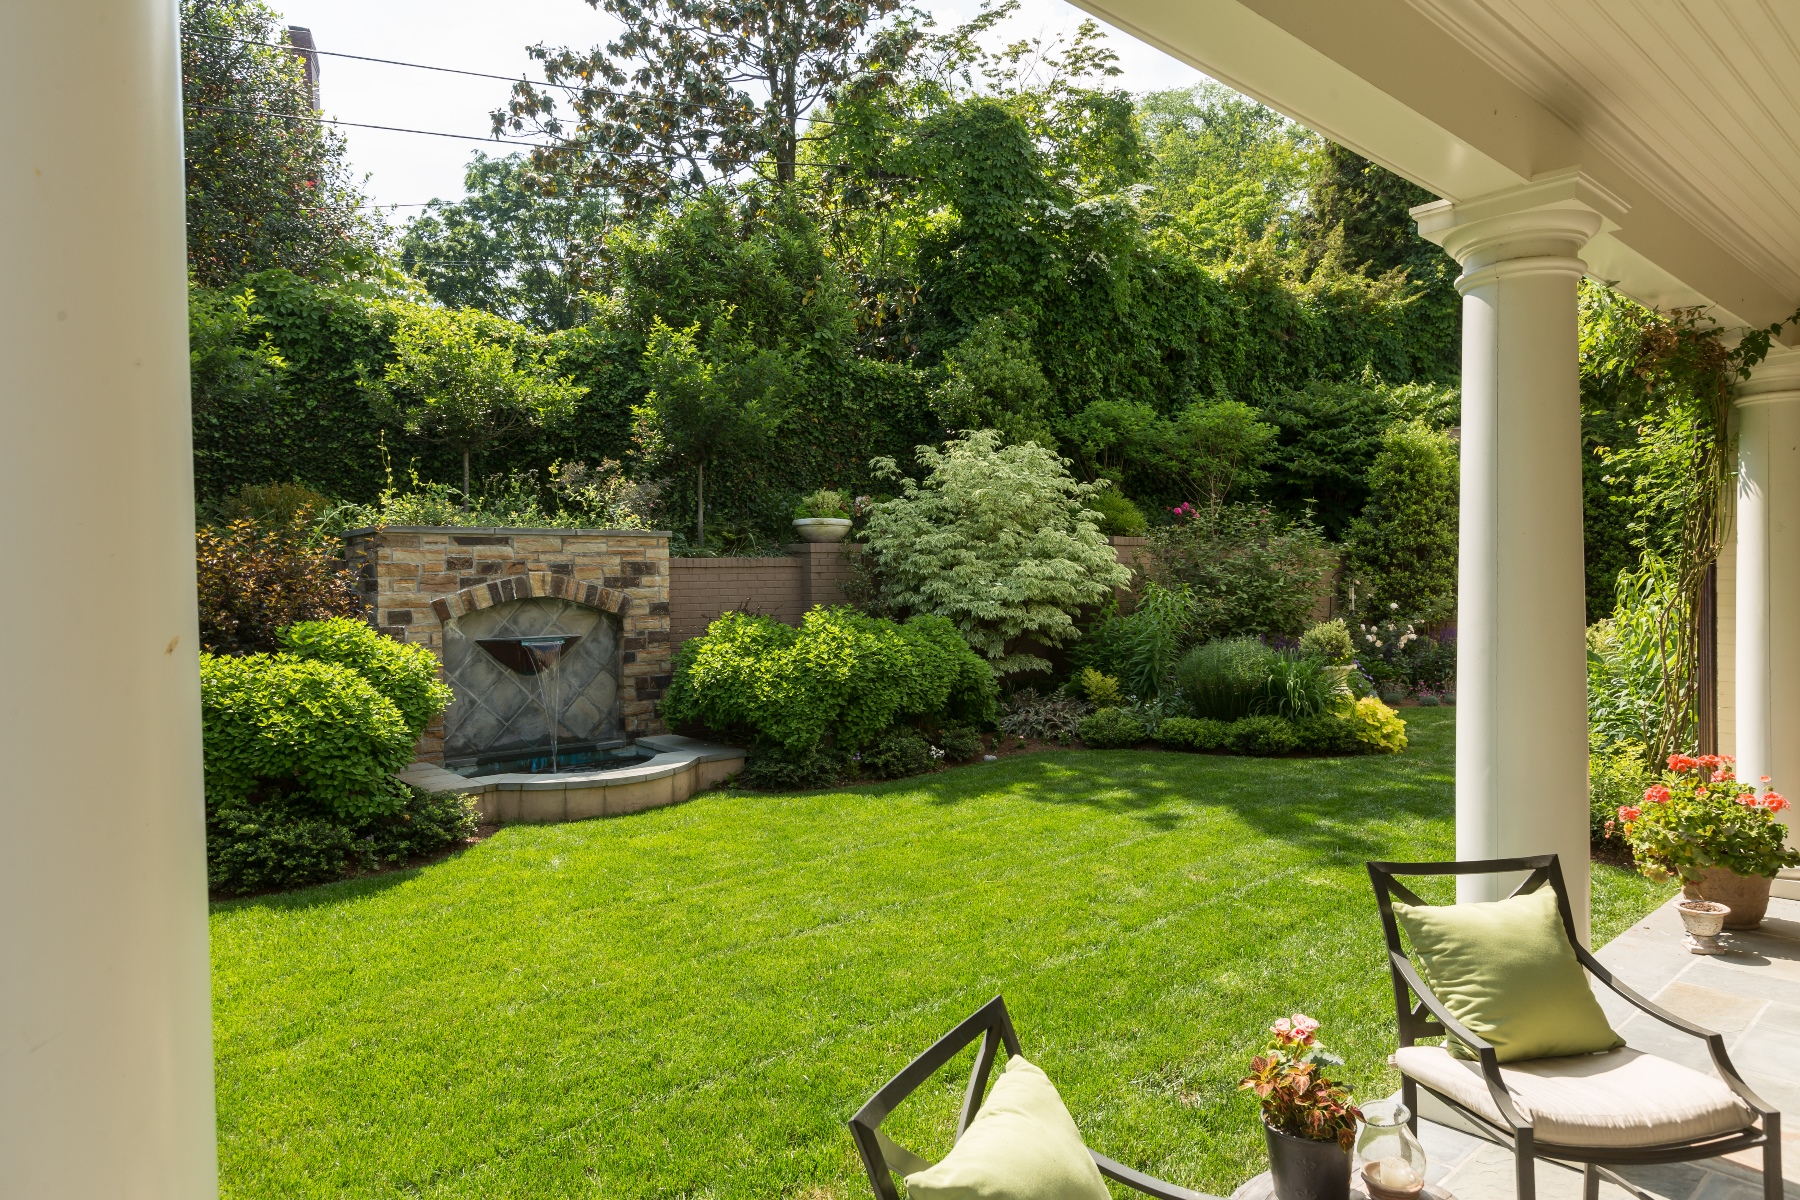 Additional photo for property listing at 1726 Hoban Road Nw, Washington  Washington, District Of Columbia 20007 Verenigde Staten